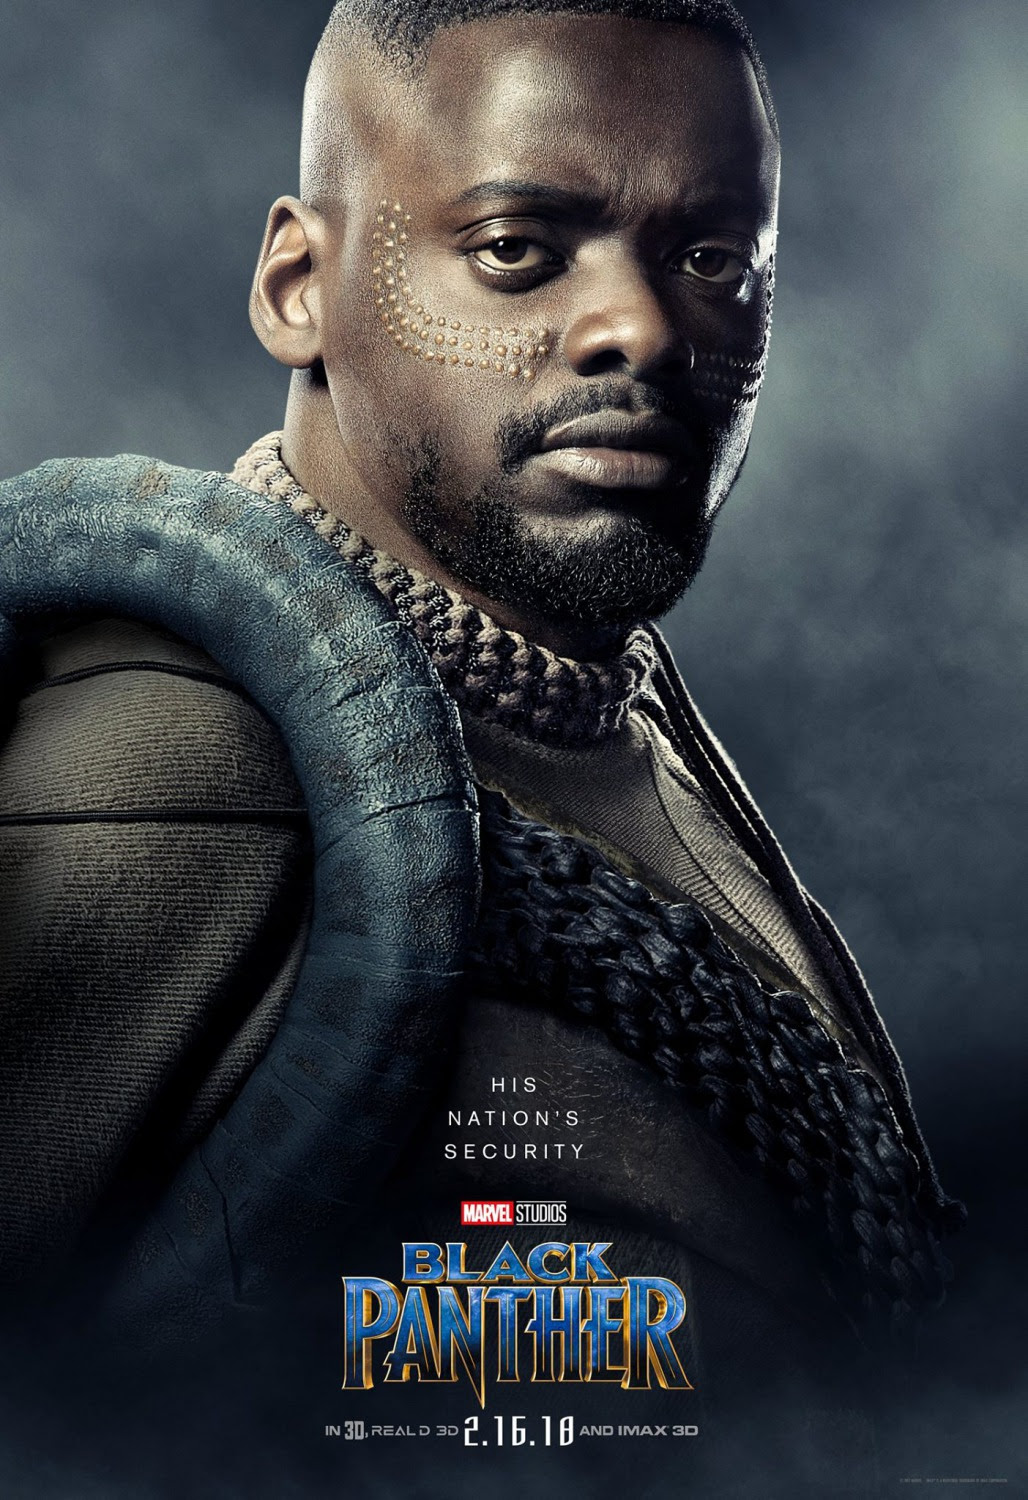 Extra Large Movie Poster Image for Black Panther (#14 of 23)